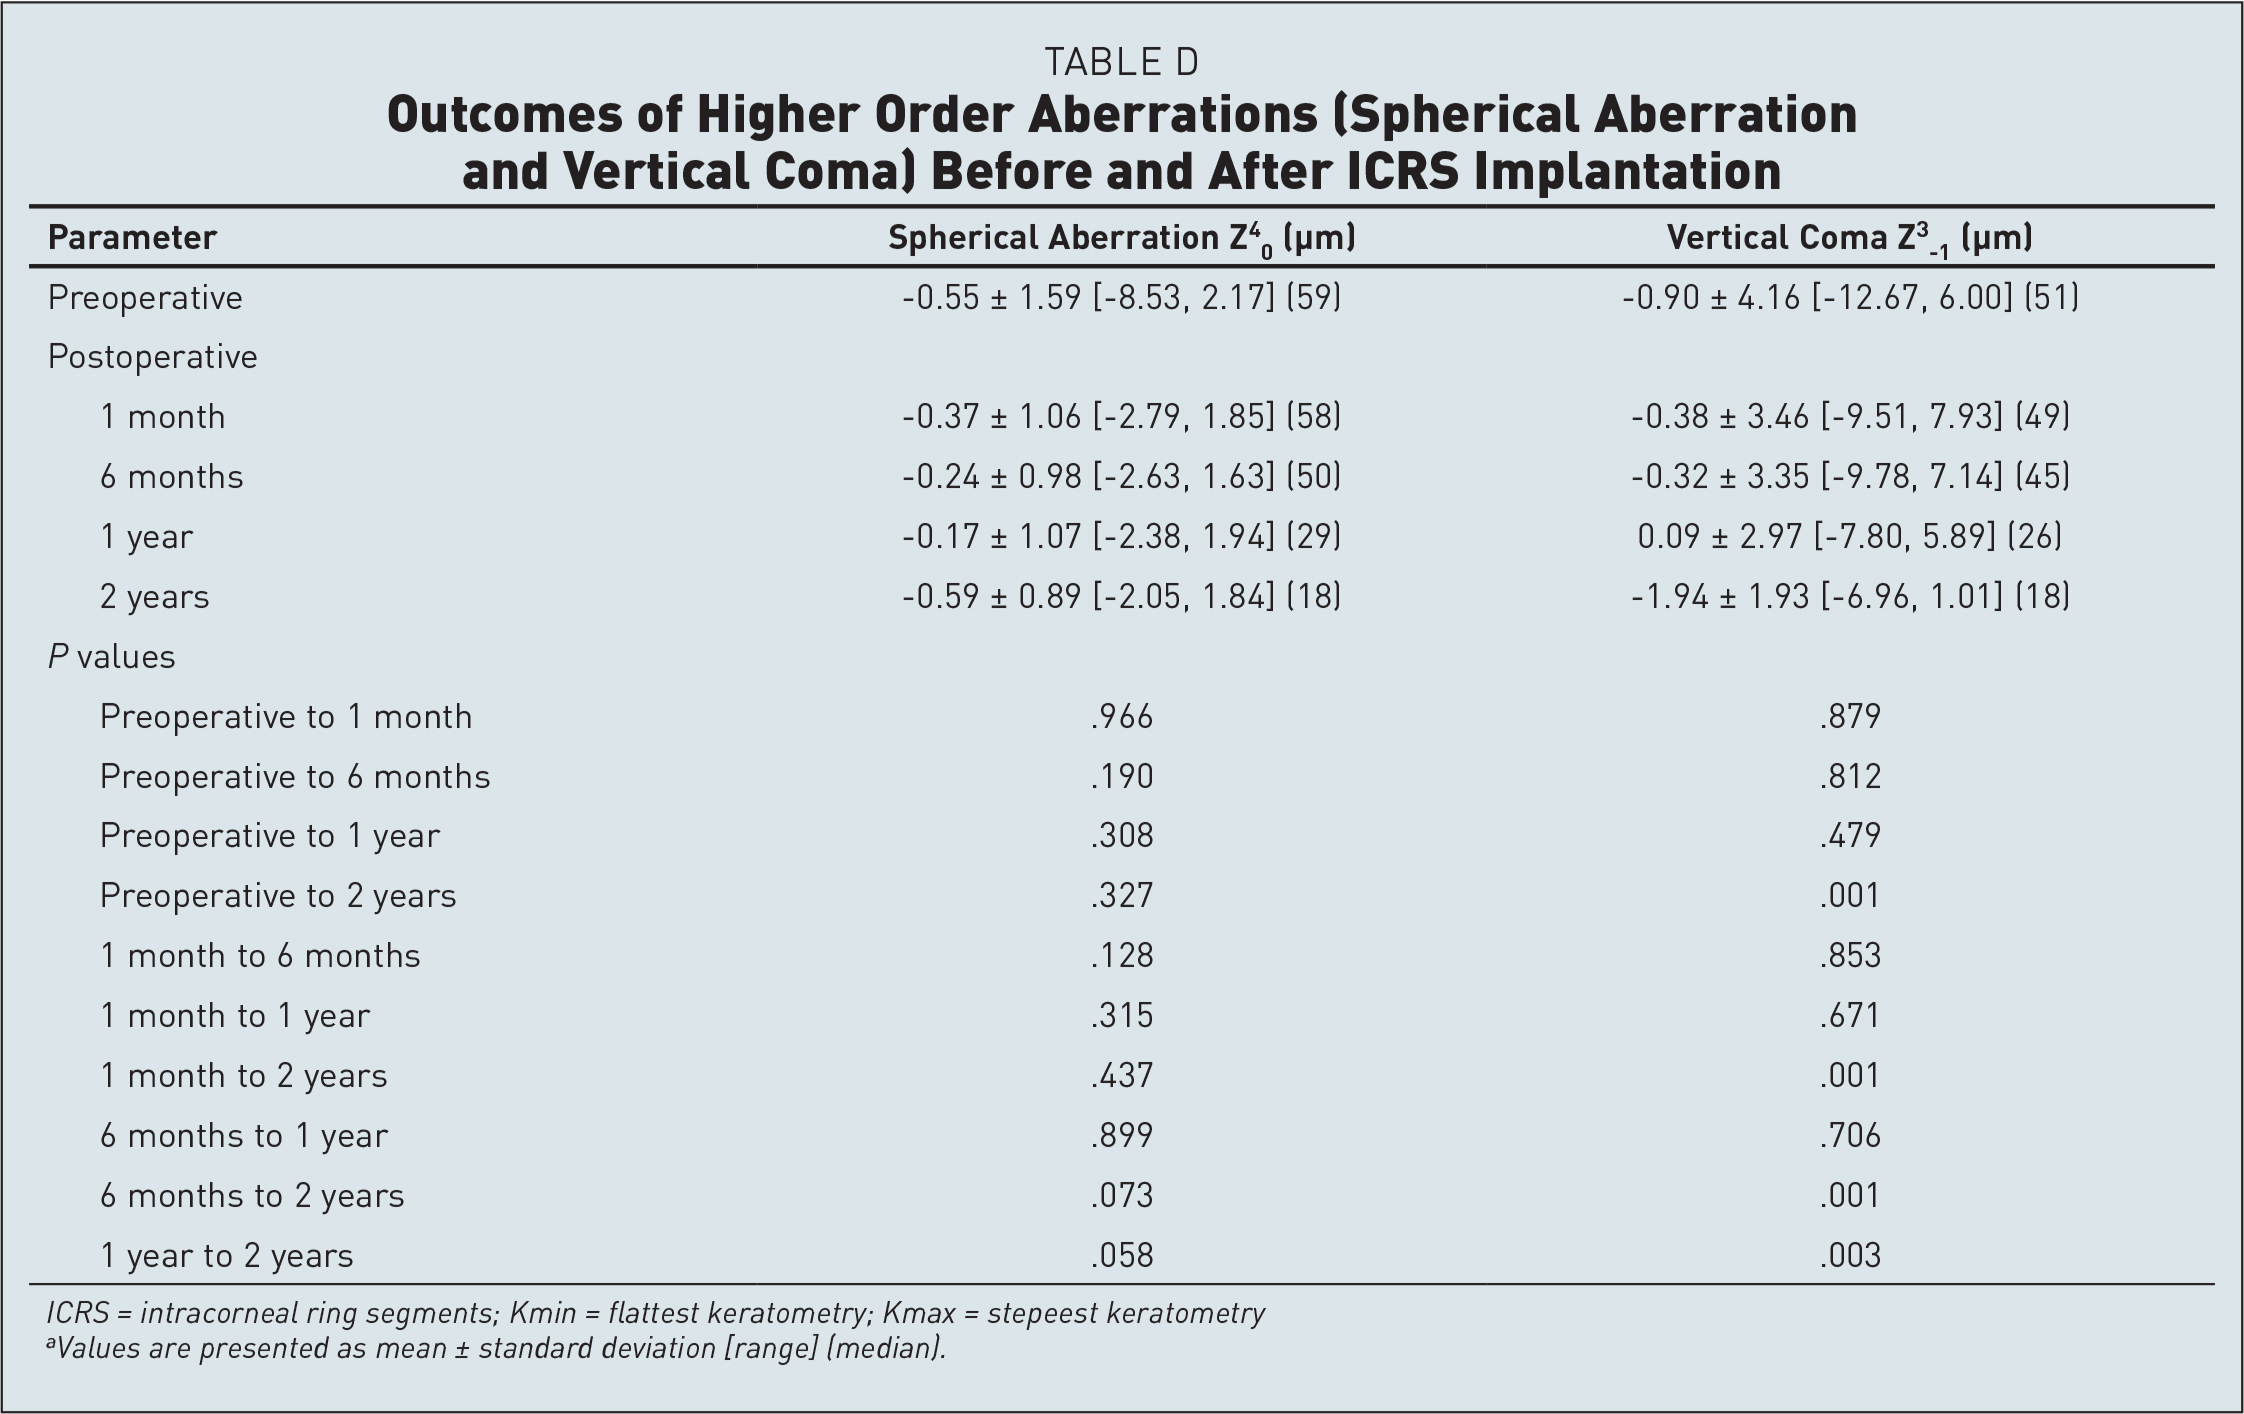 Outcomes of Higher Order Aberrations (Spherical Aberration and Vertical Coma) Before and After ICRS Implantation